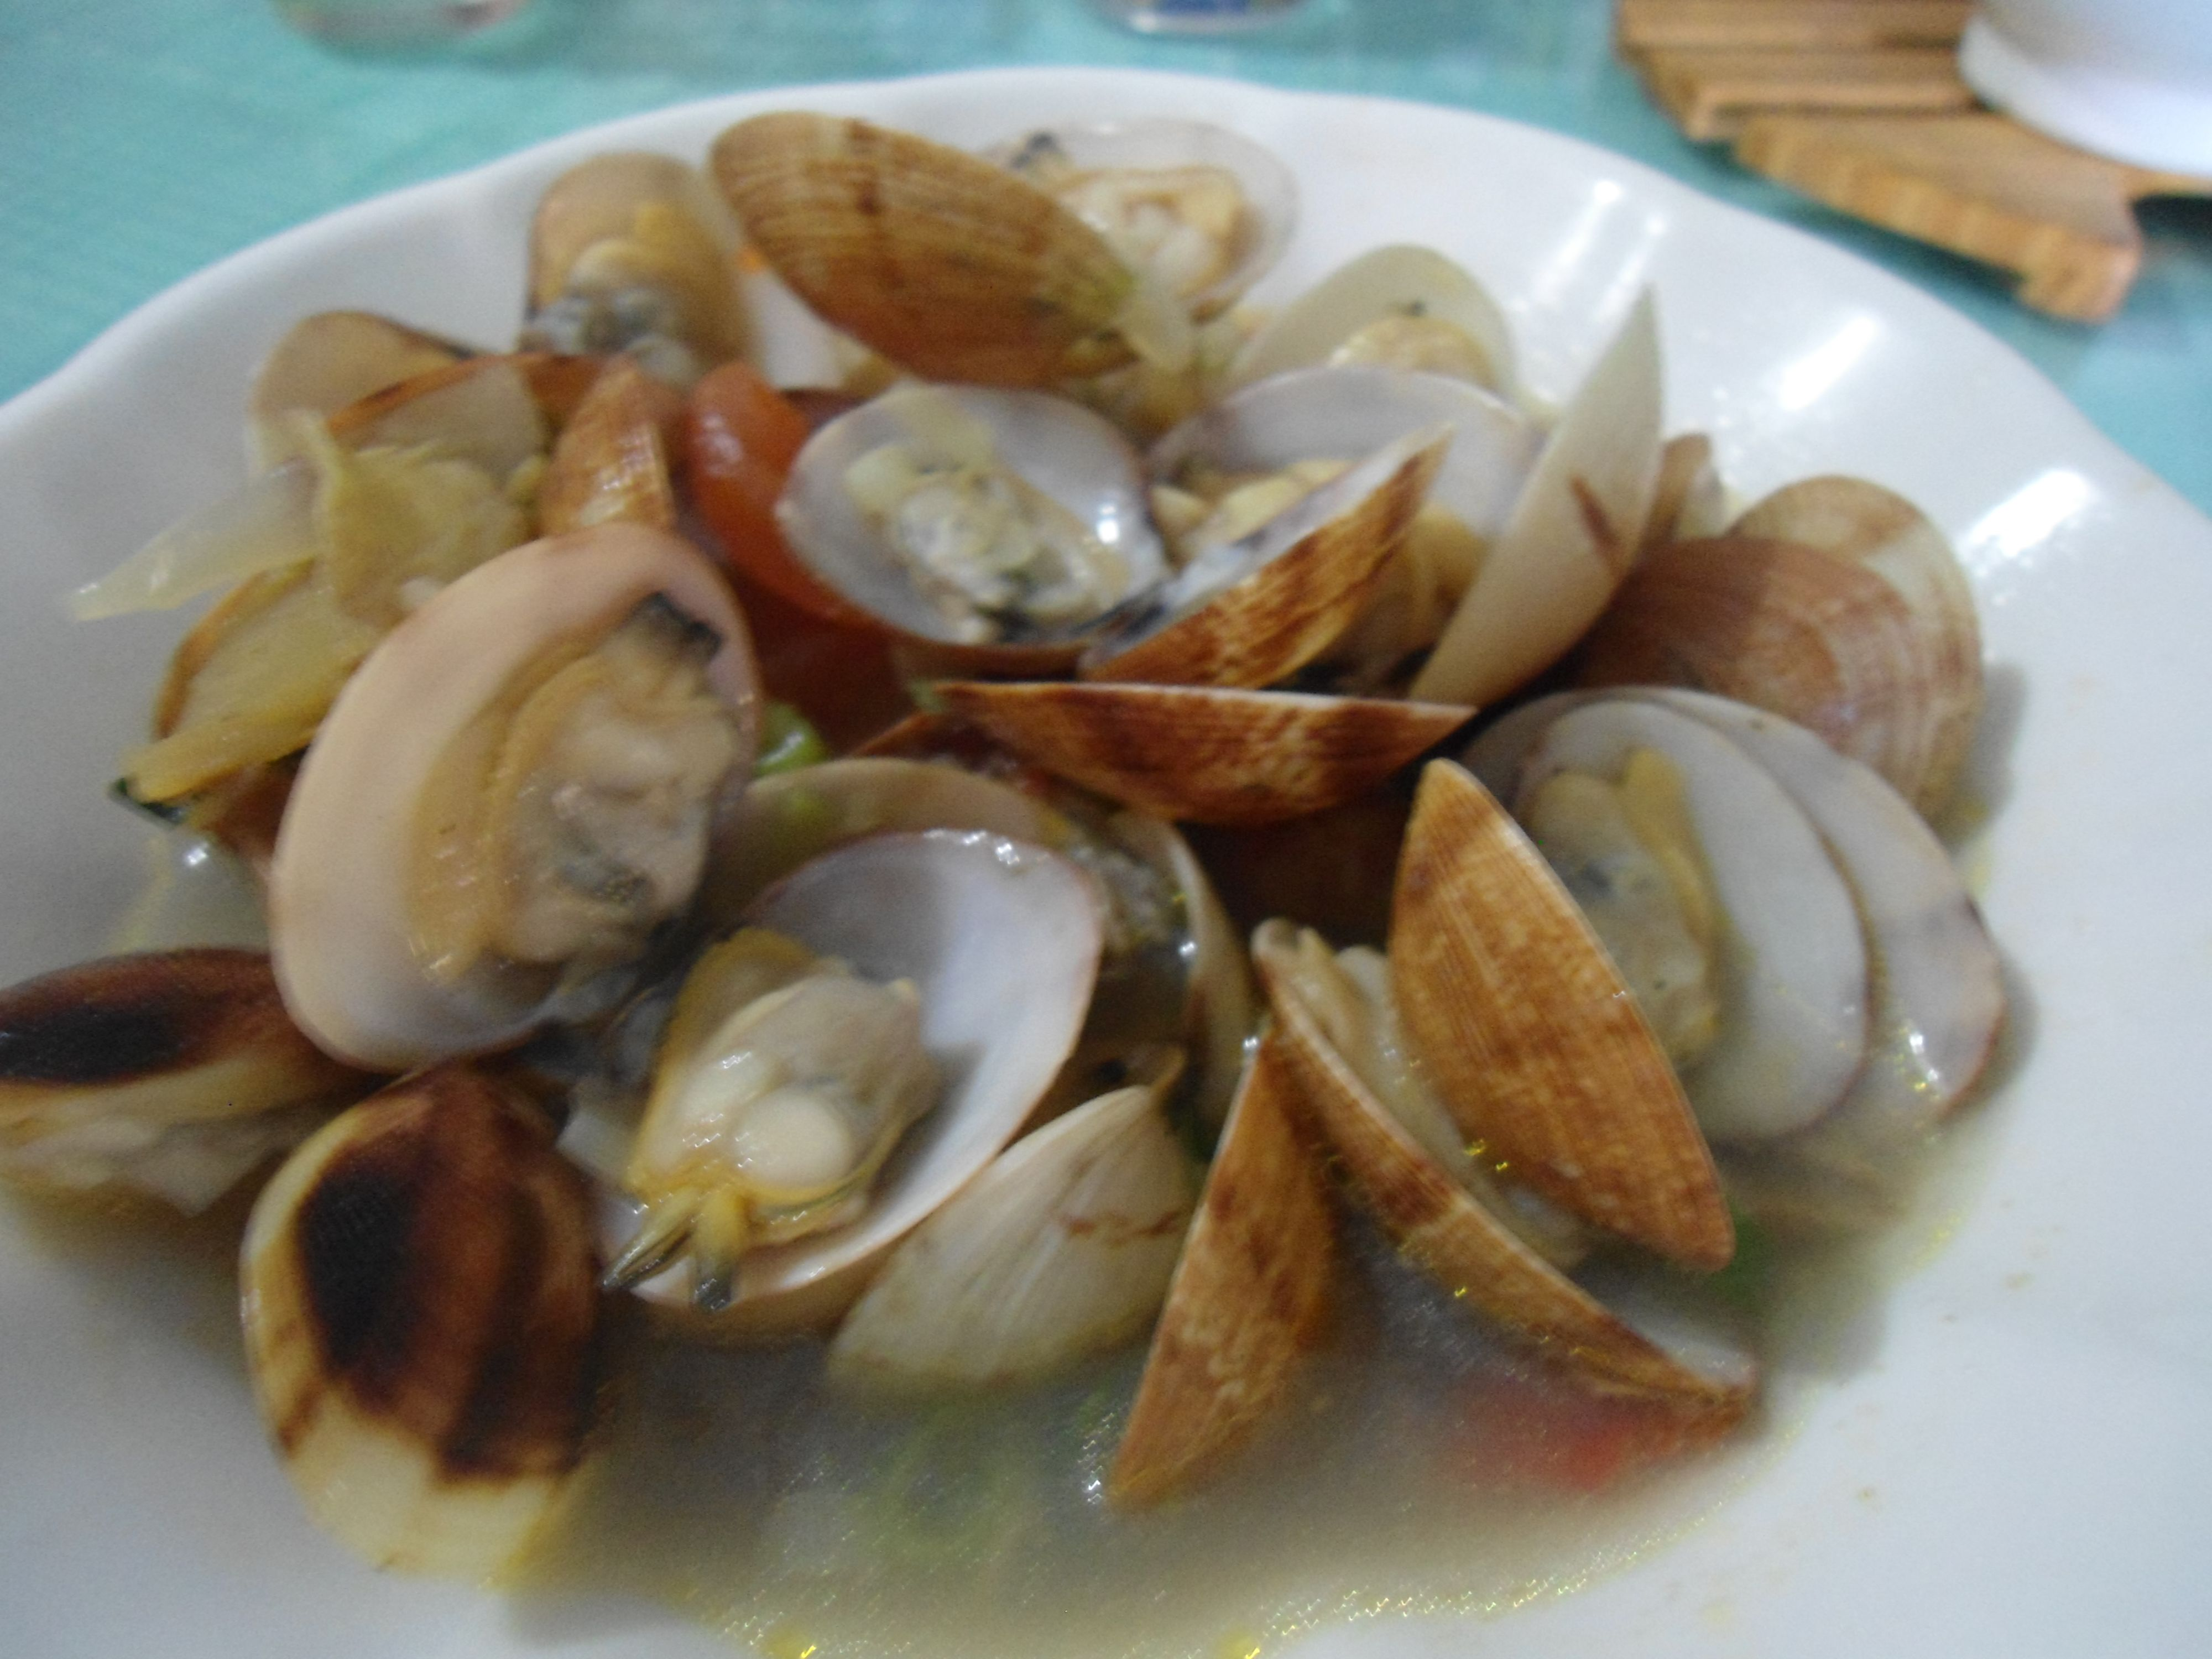 tinolang halaan [clams soup with ginger and chili leaves]